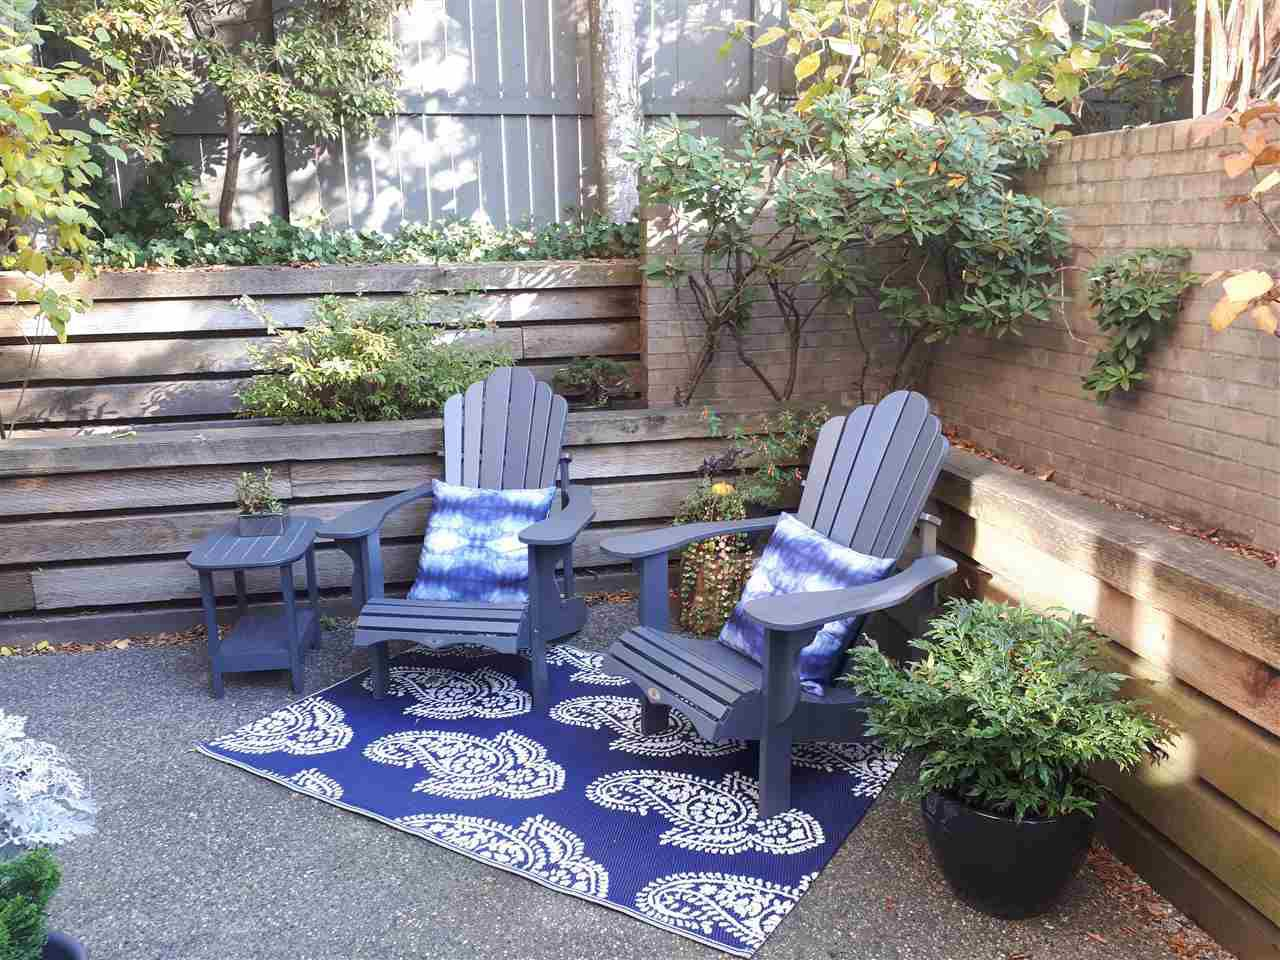 """Main Photo: E108 628 W 12TH Avenue in Vancouver: Fairview VW Condo for sale in """"CONNAUGHT GARDENS"""" (Vancouver West)  : MLS®# R2319711"""